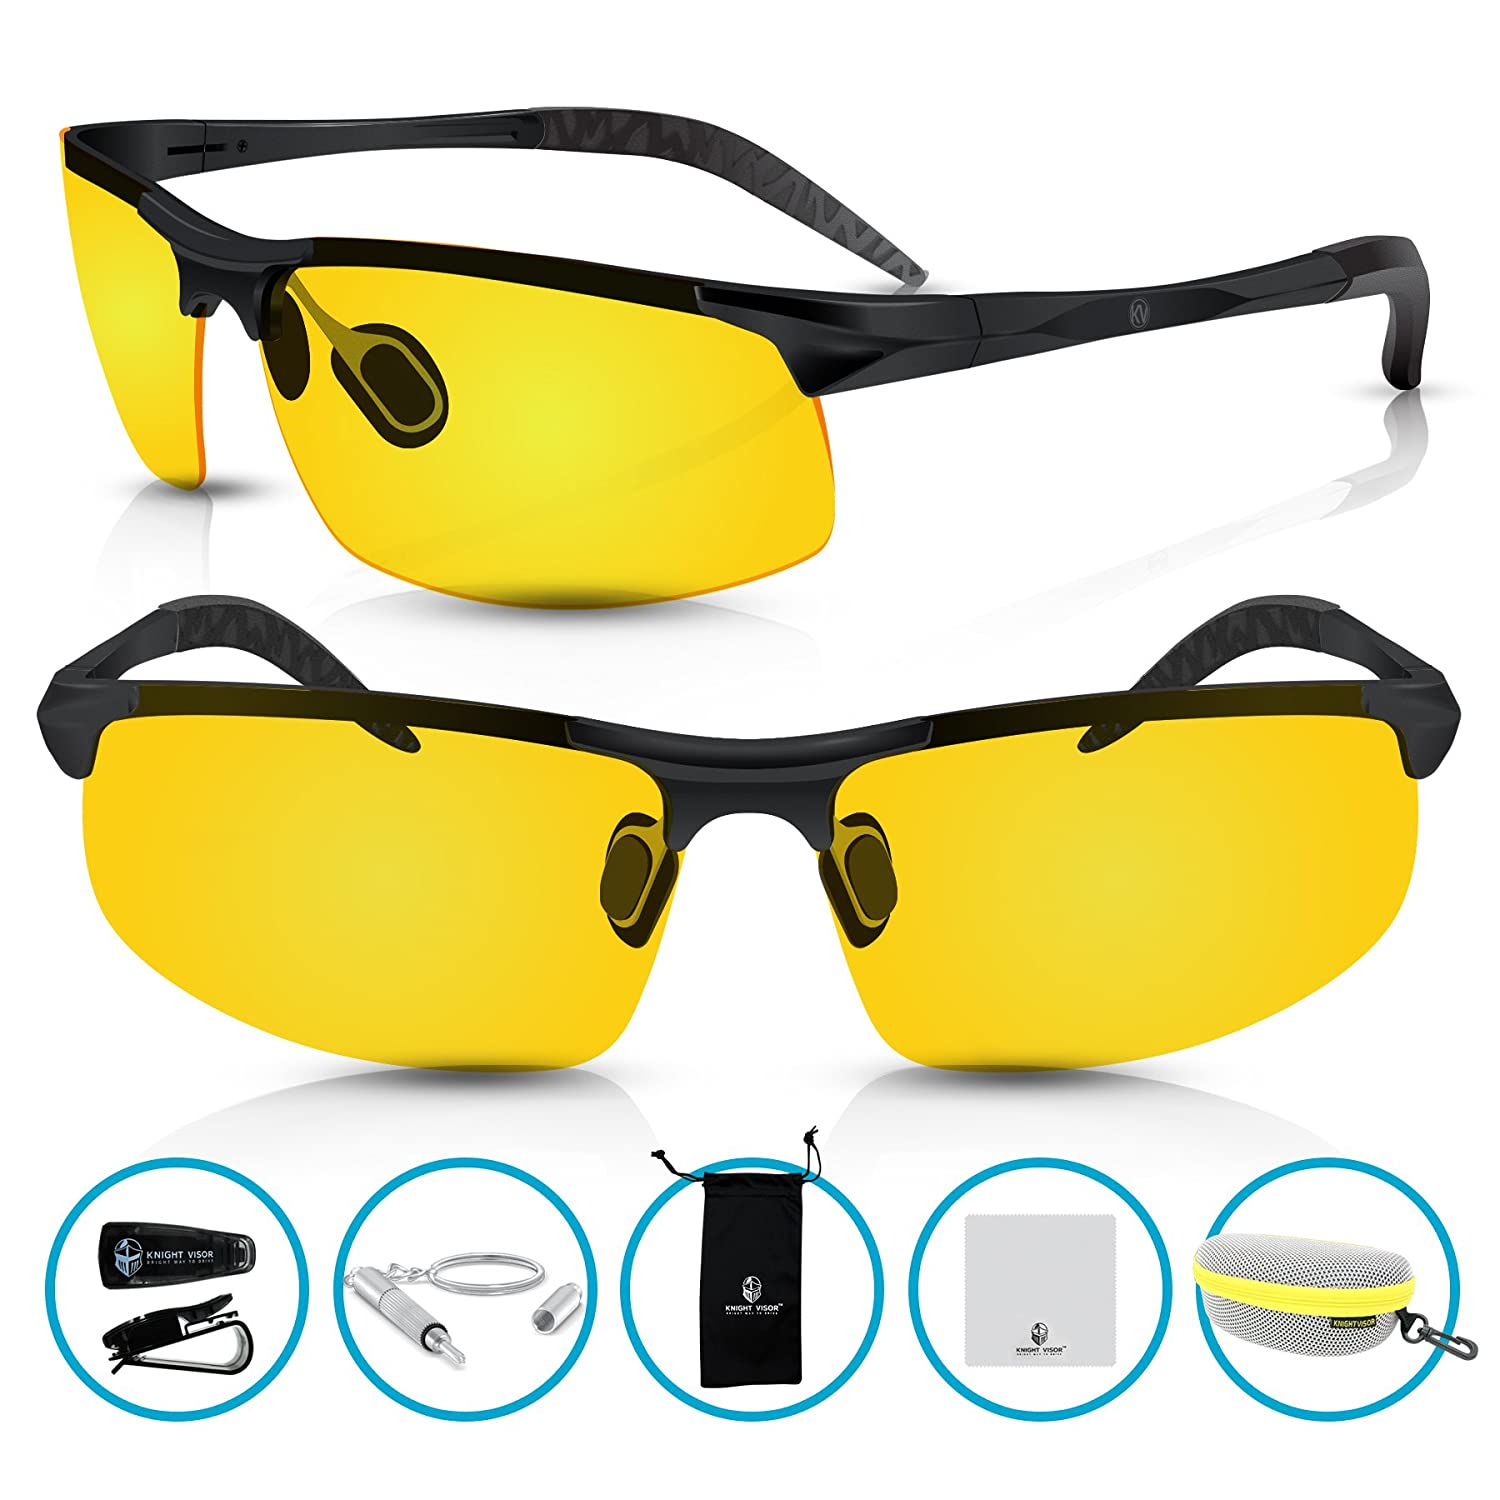 208fc43d61c78 Knight Visor Polarized Professional HD Night Vision Glasses for Driving -  Sport Bike Riders Protection Sunglasses - With Flexible Frame and FREE Car  Clip ...